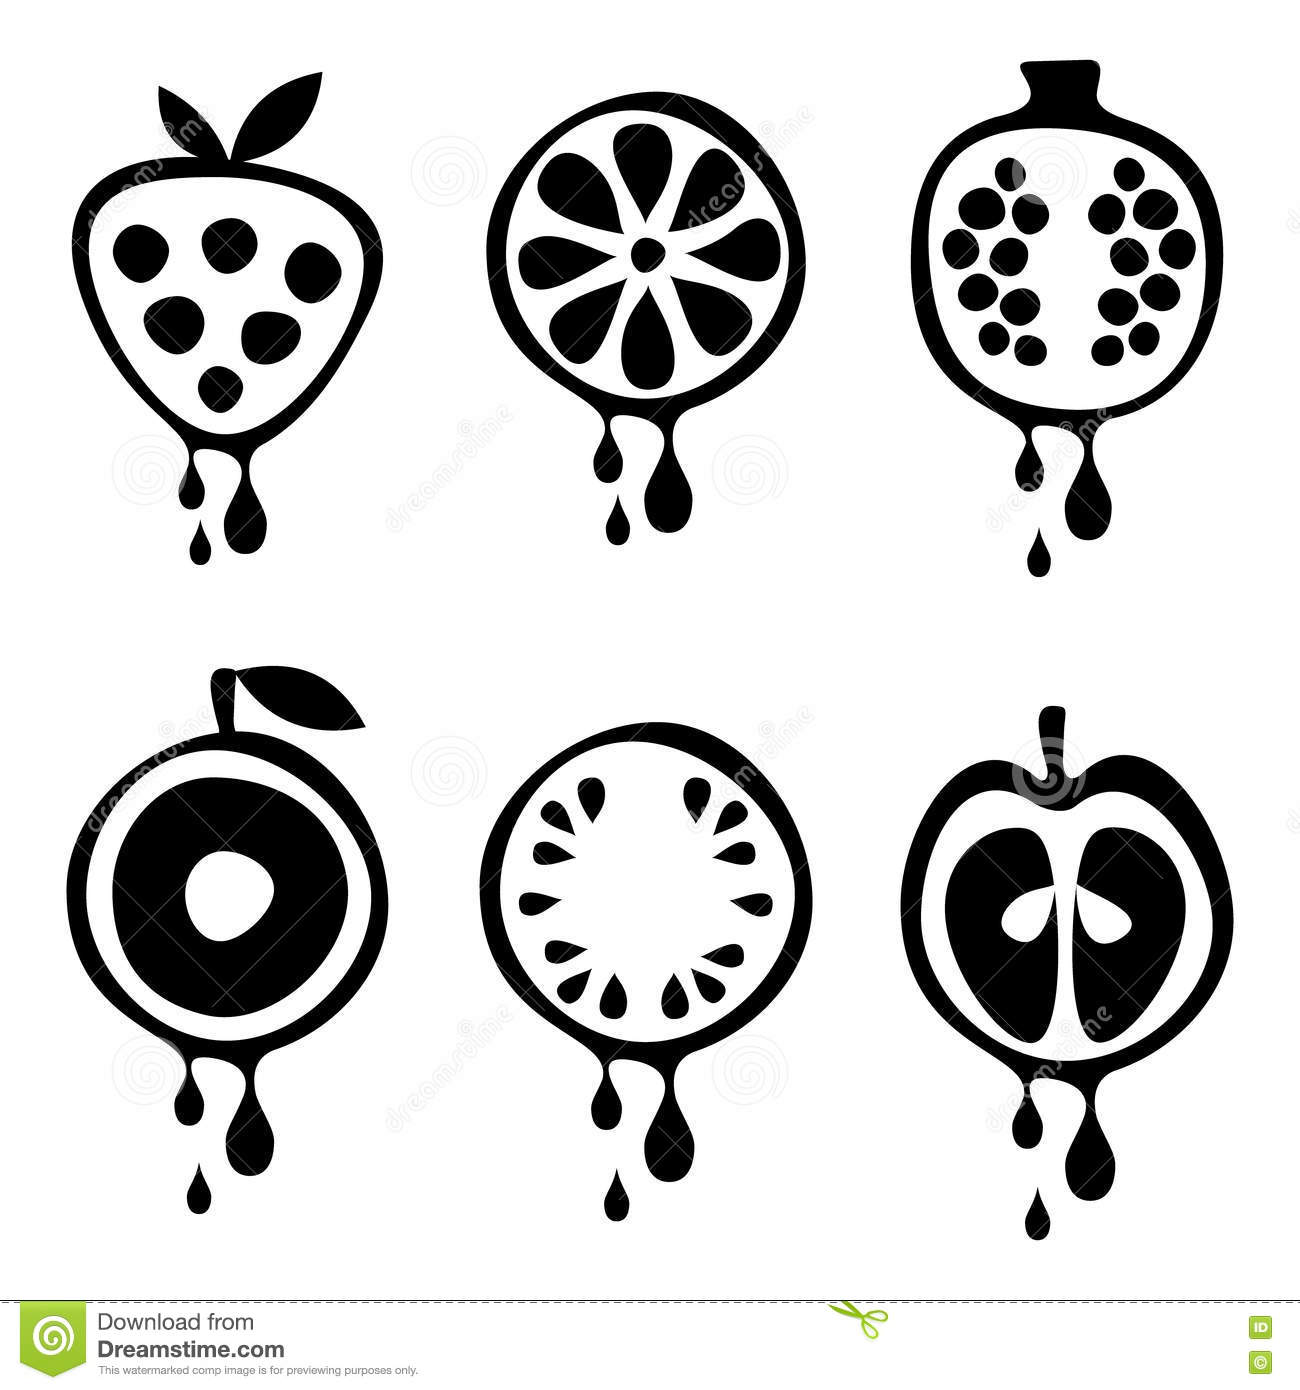 Set Of Vector Black And White Illustrations Of Fruits. Stock ... for Clipart Strawberry Black And White  104xkb